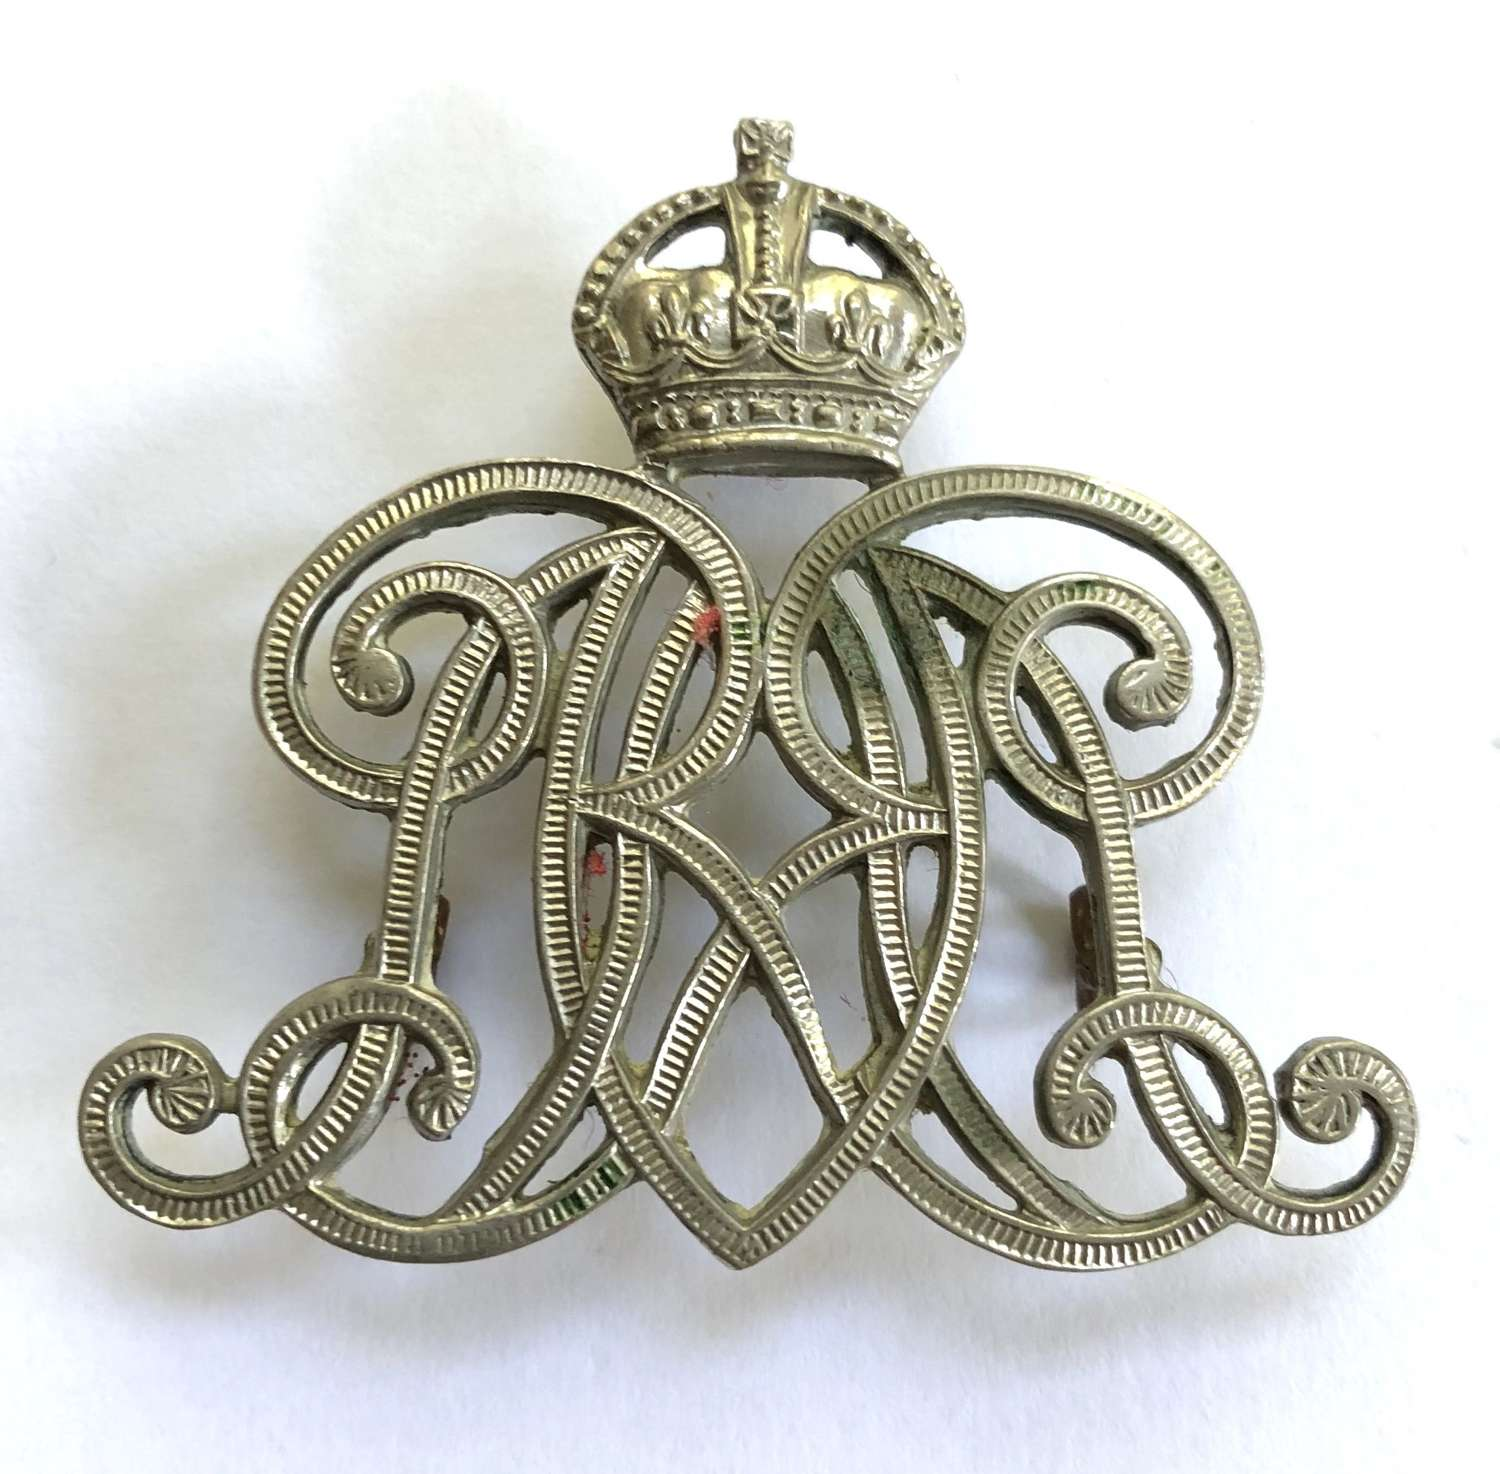 9th Queen's Royal Lancers NCO's white metal arm badge circa 1901-52